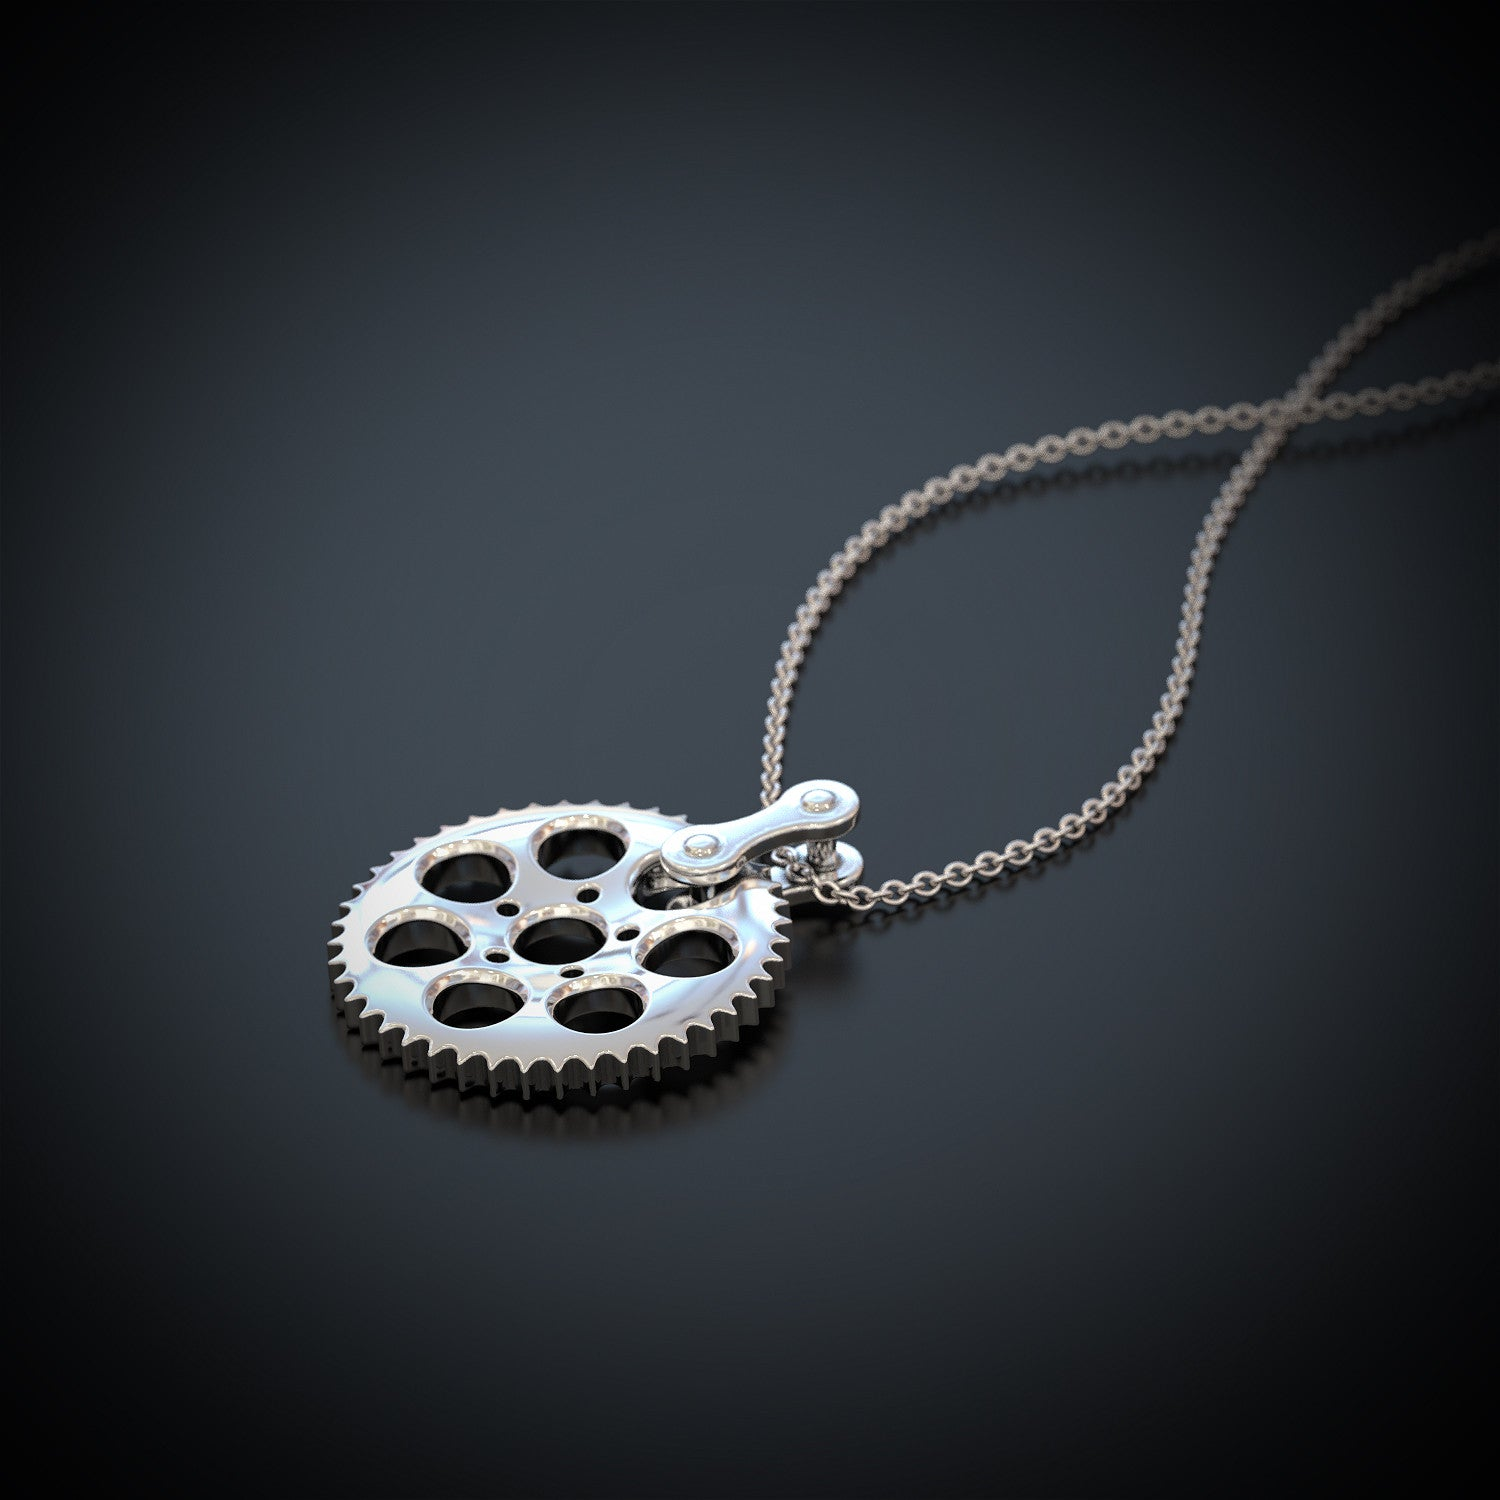 HD Cog Necklace - STRICTLY LIMITED EDITION